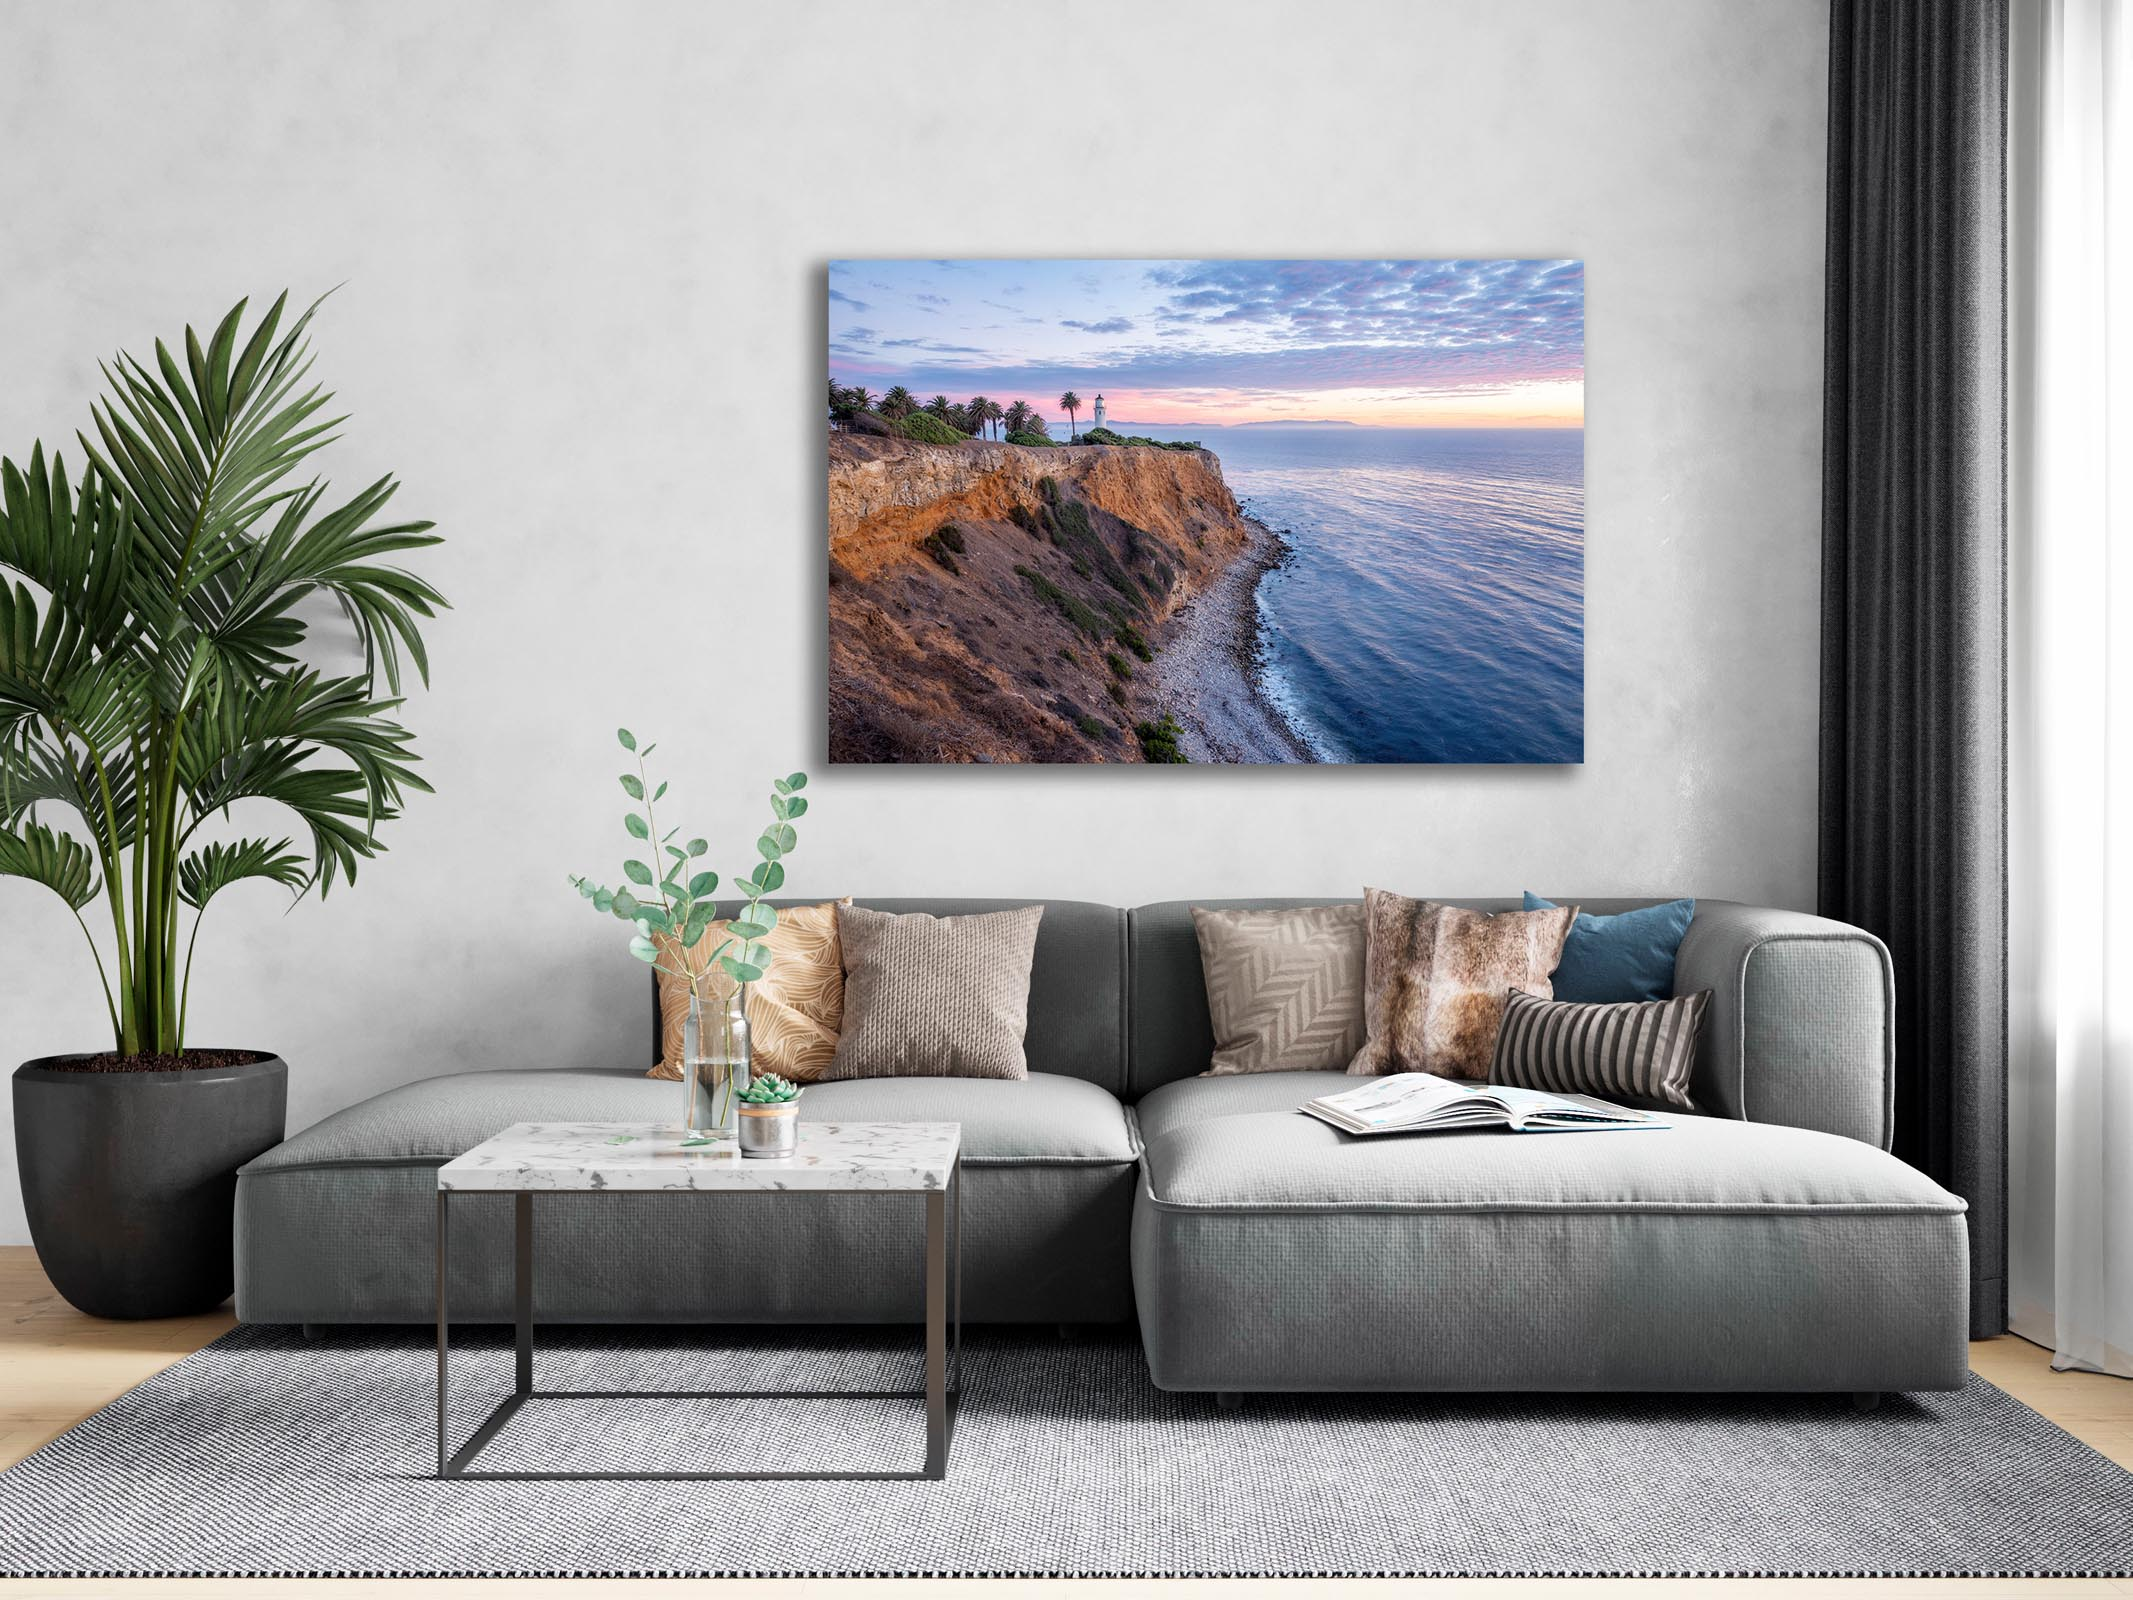 Wall art of Point Vicente Lighthouse in Palos Verdes, California by Brent Goldman Photography